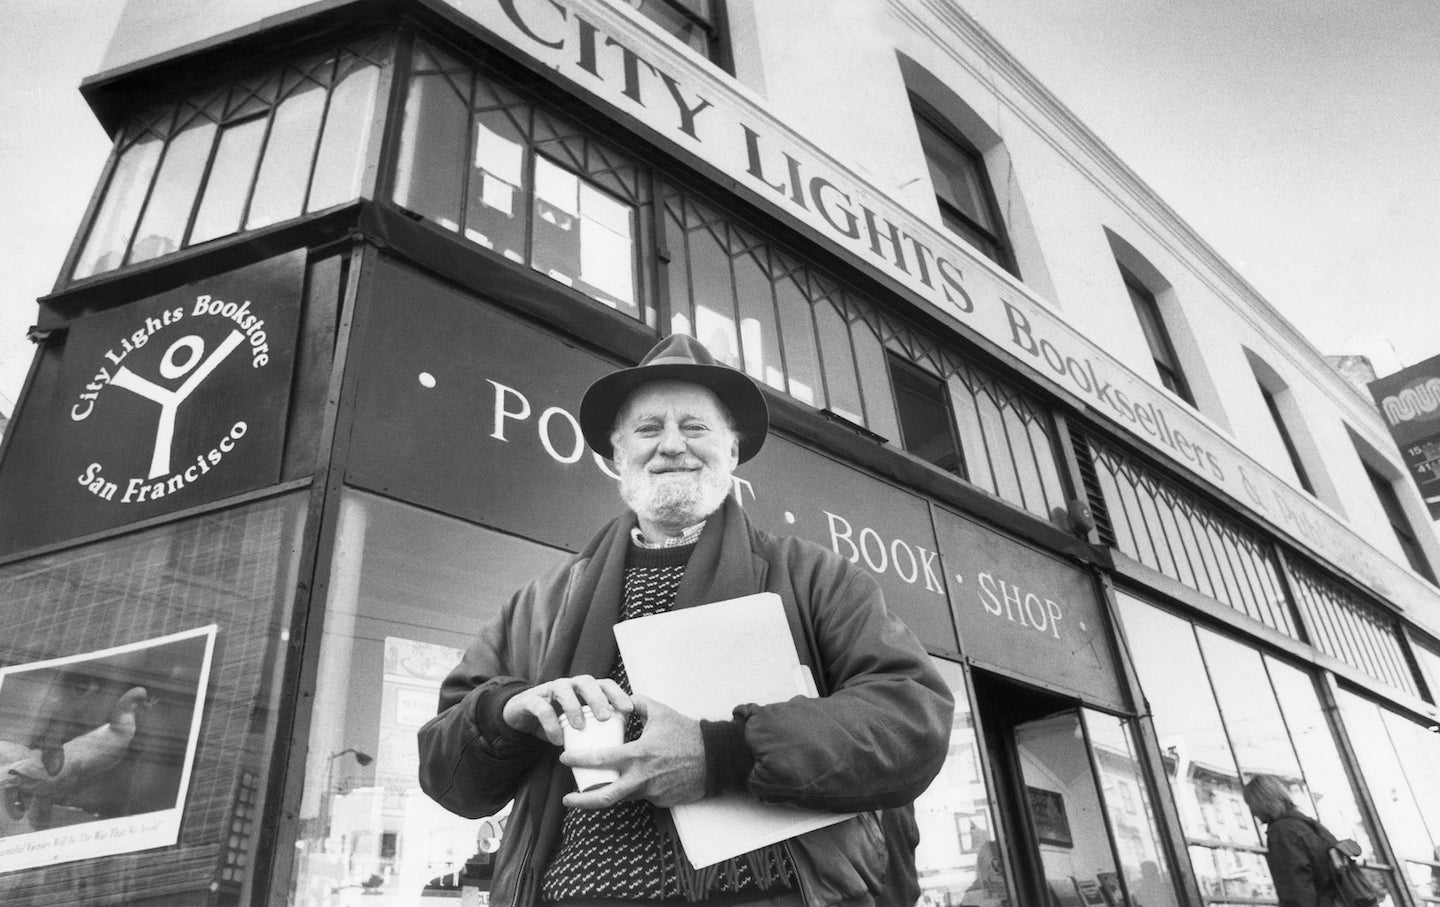 LAWRENCE FERLINGHETTI HAS DIED